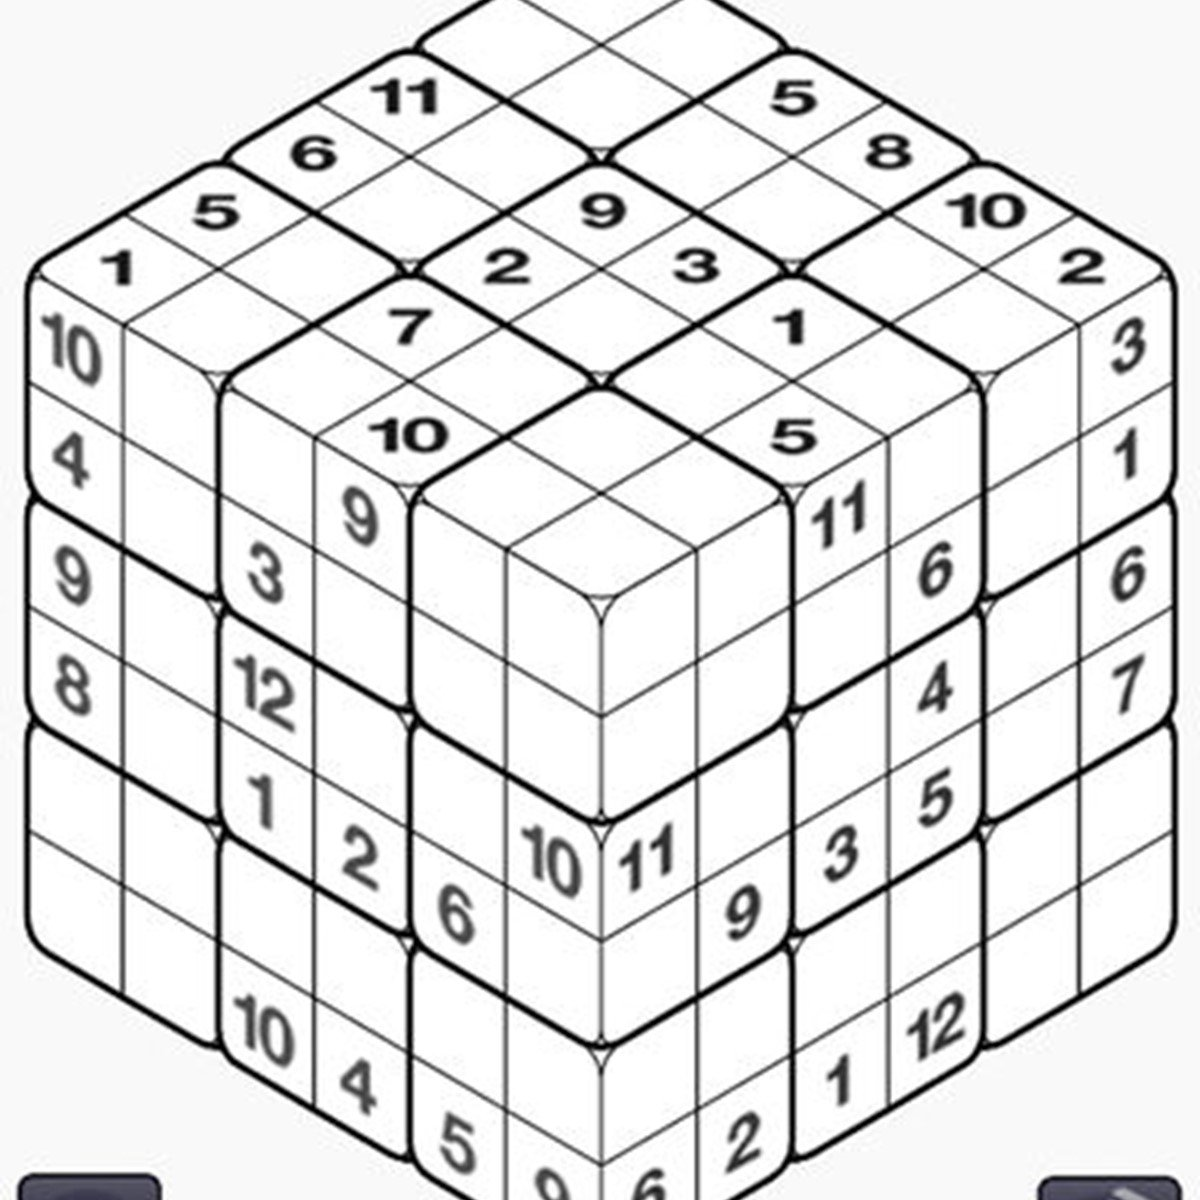 Coppo Cube - Logic Game Sudoku 3D Alternatives and Similar Games